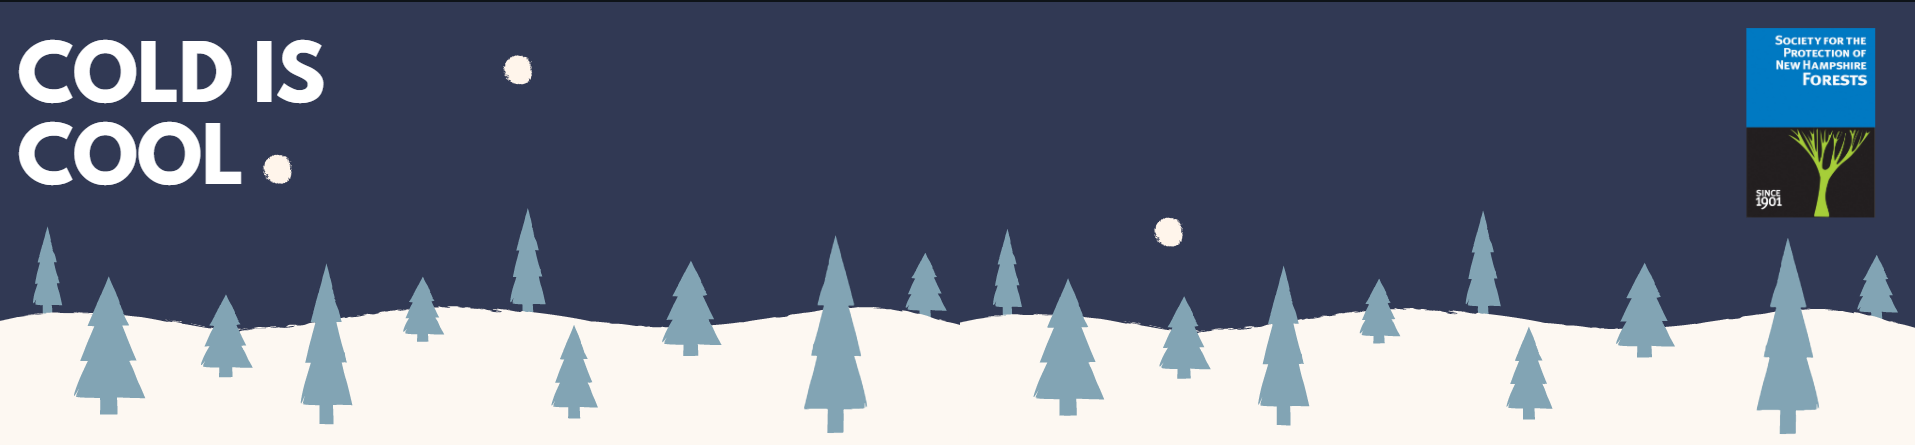 A graphic of a night sky over snow-covered trees that says Cold is Cool.